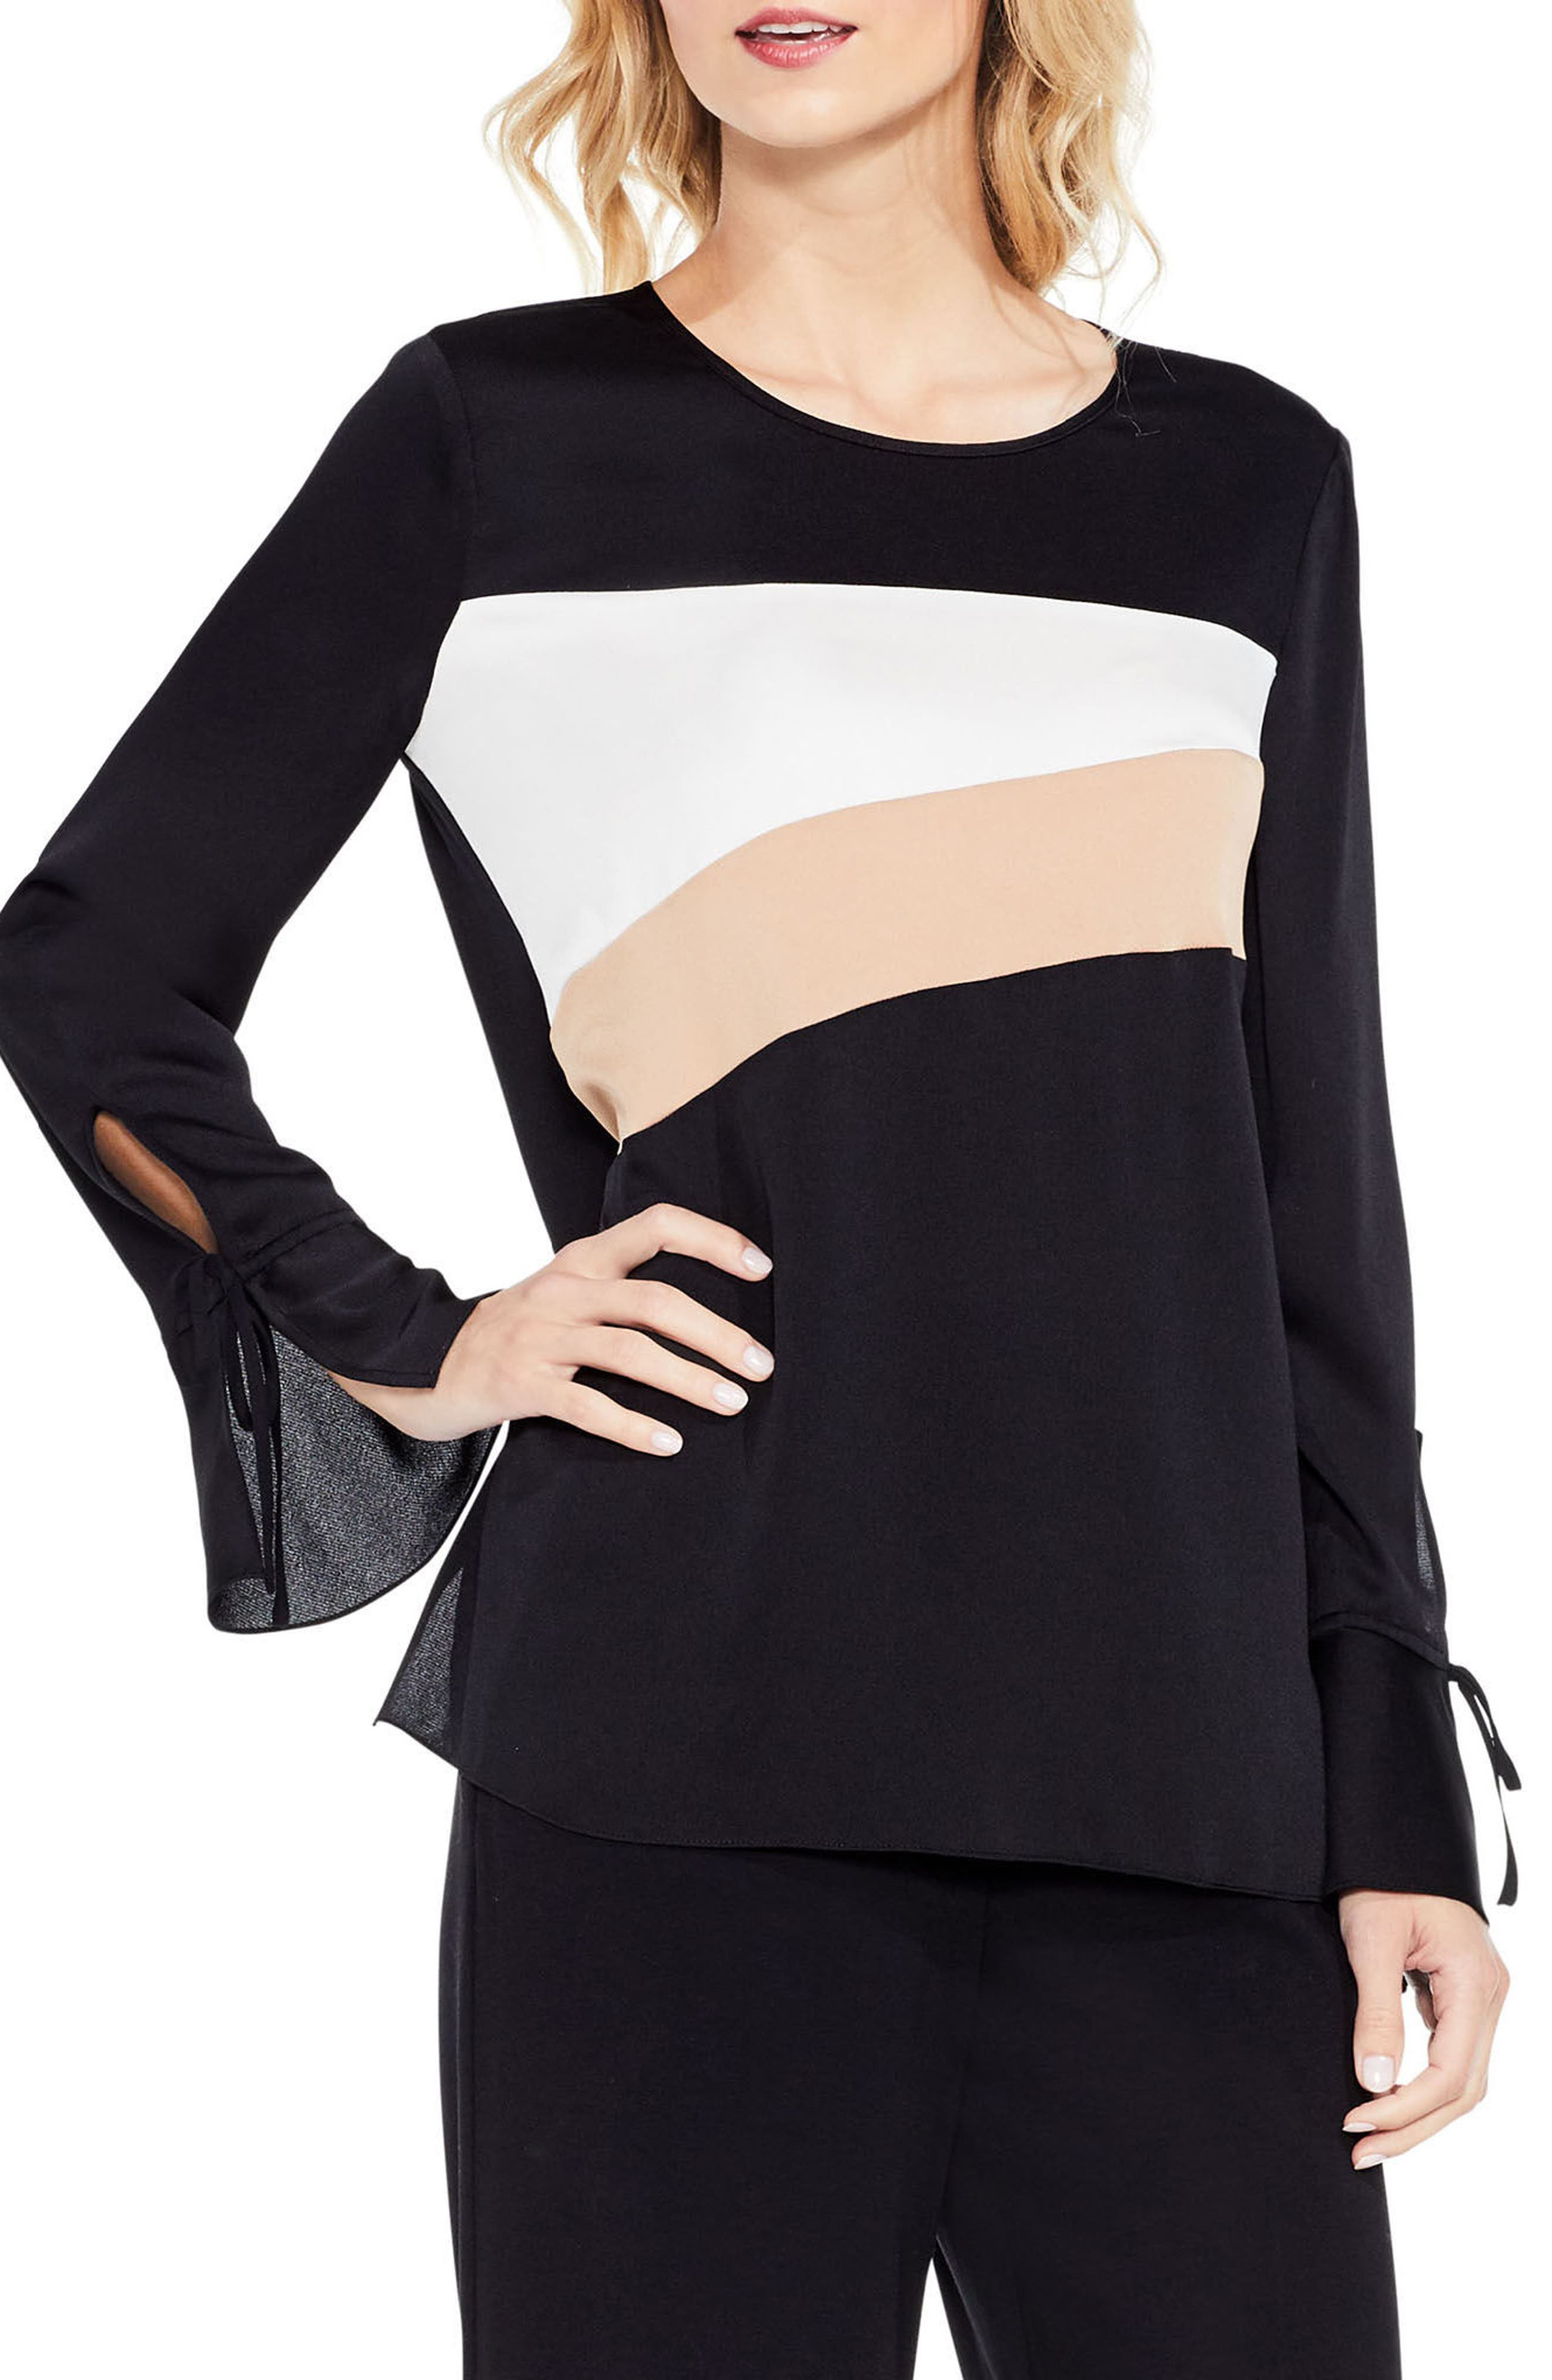 Alternate Image 1 Selected - Vince Camuto Bell Sleeve Colorblock Top